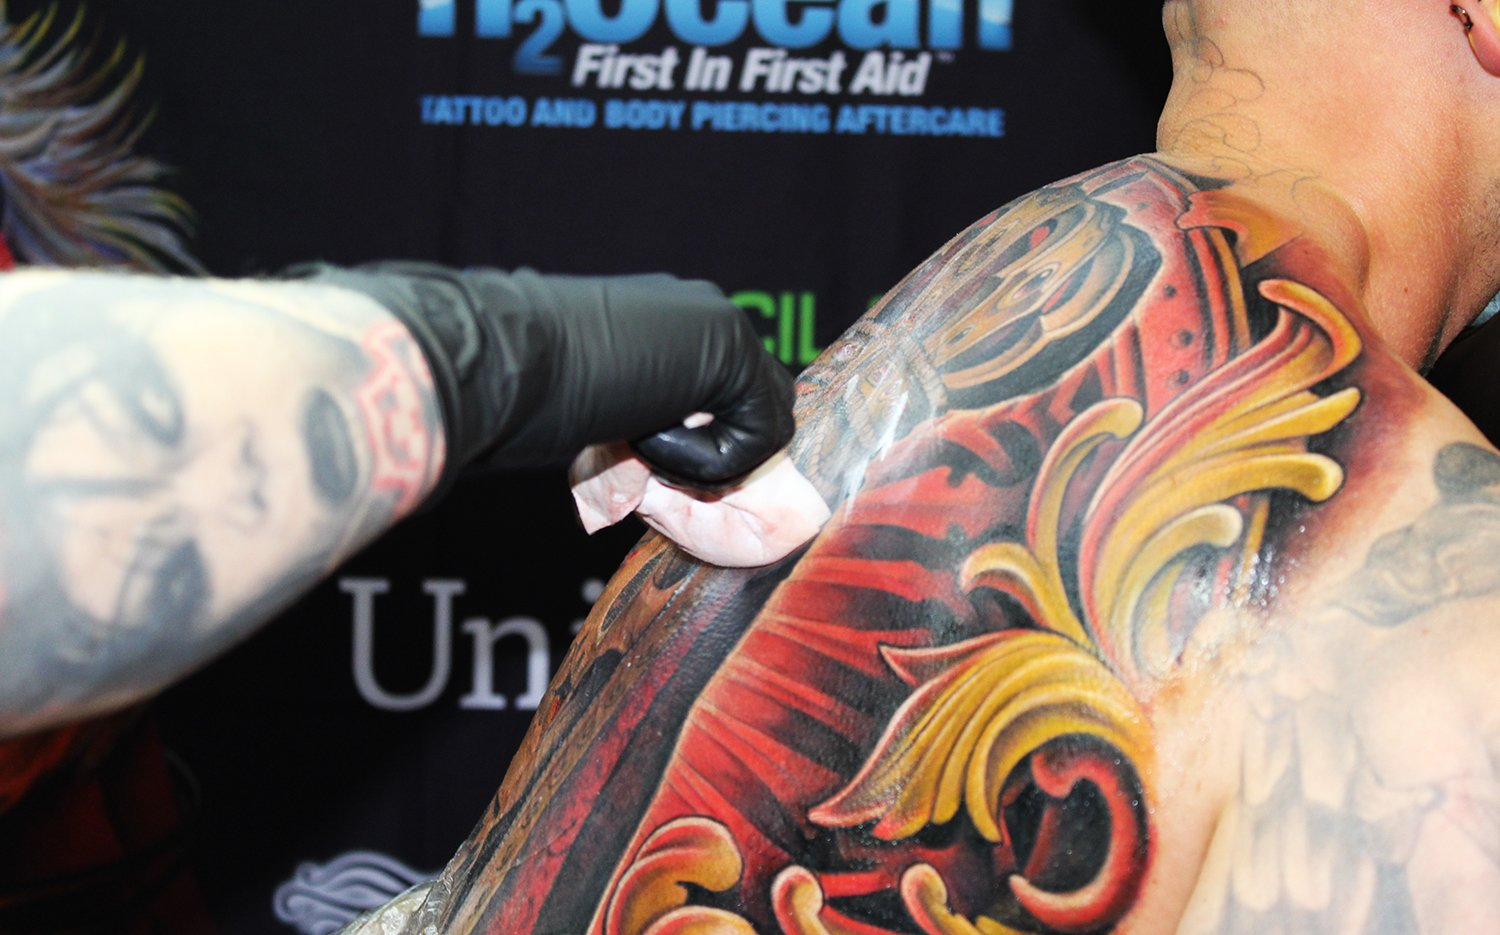 Julian siebert tattooing another epic back piece, color